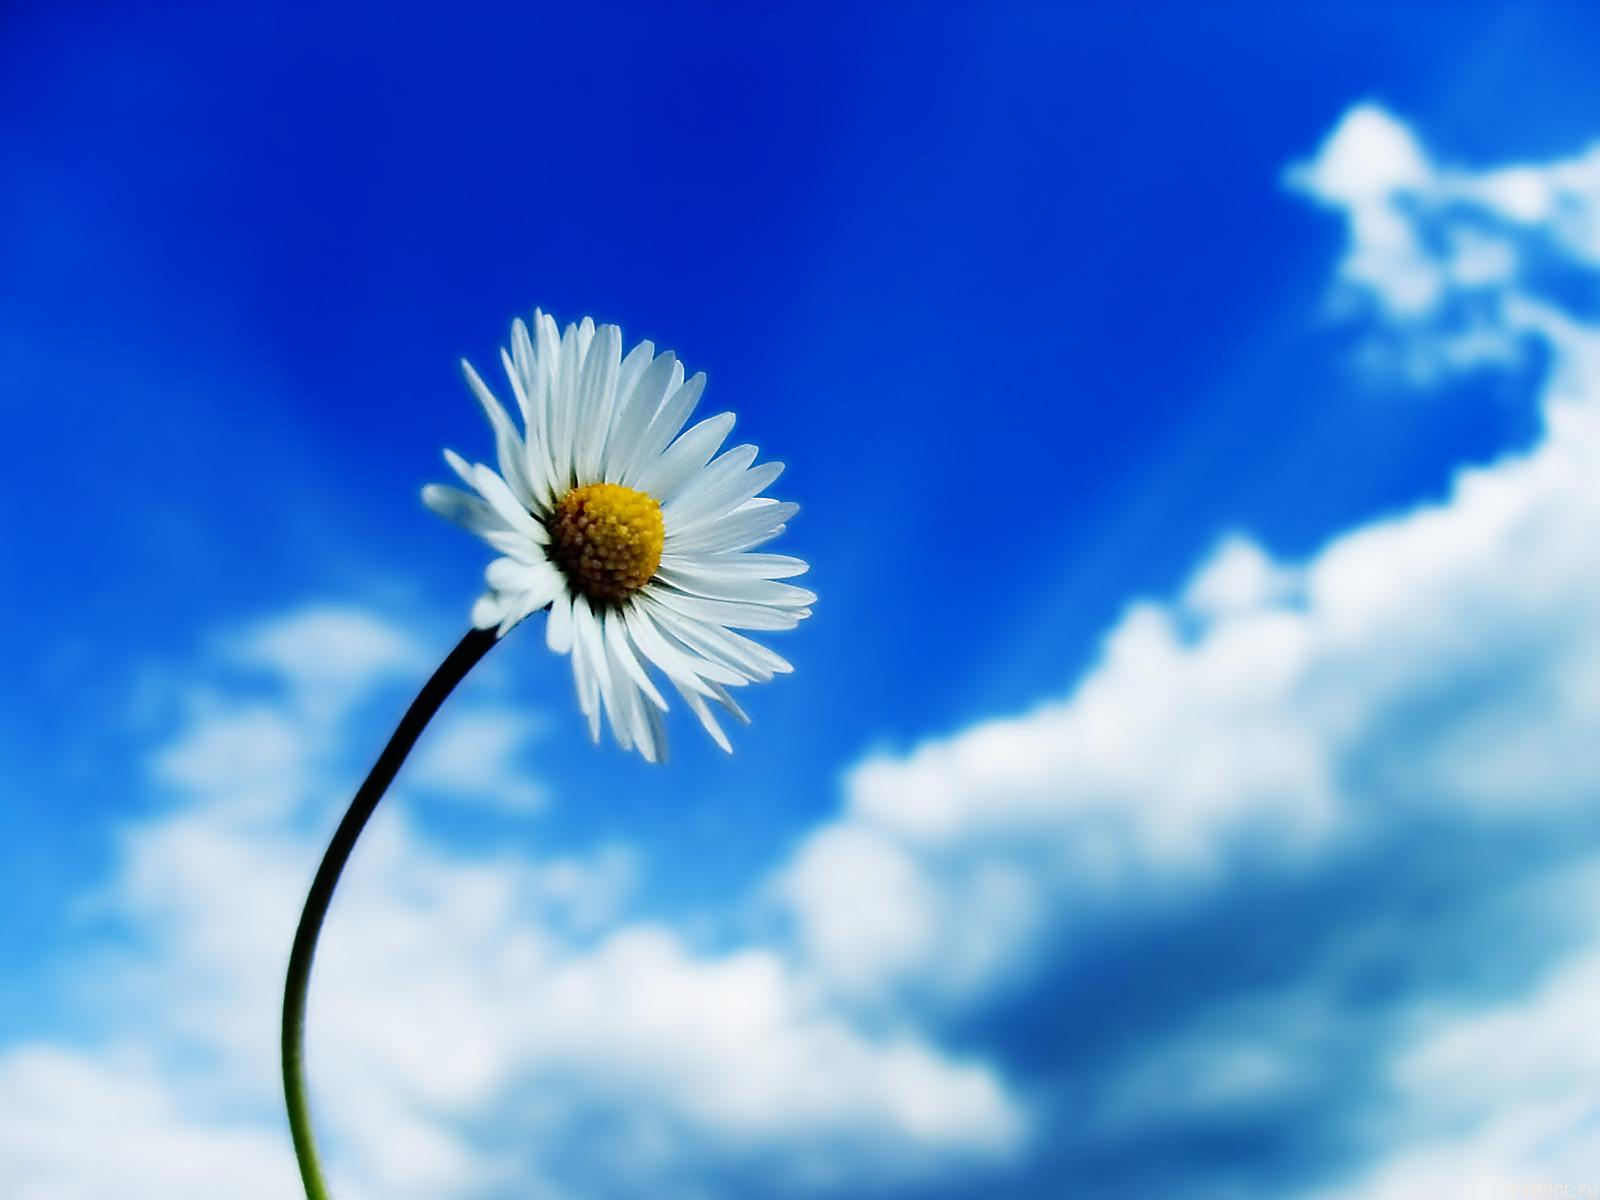 Flowers Wallpapers HD Wallpapers Widescreen beautiful sky white 1600x1200